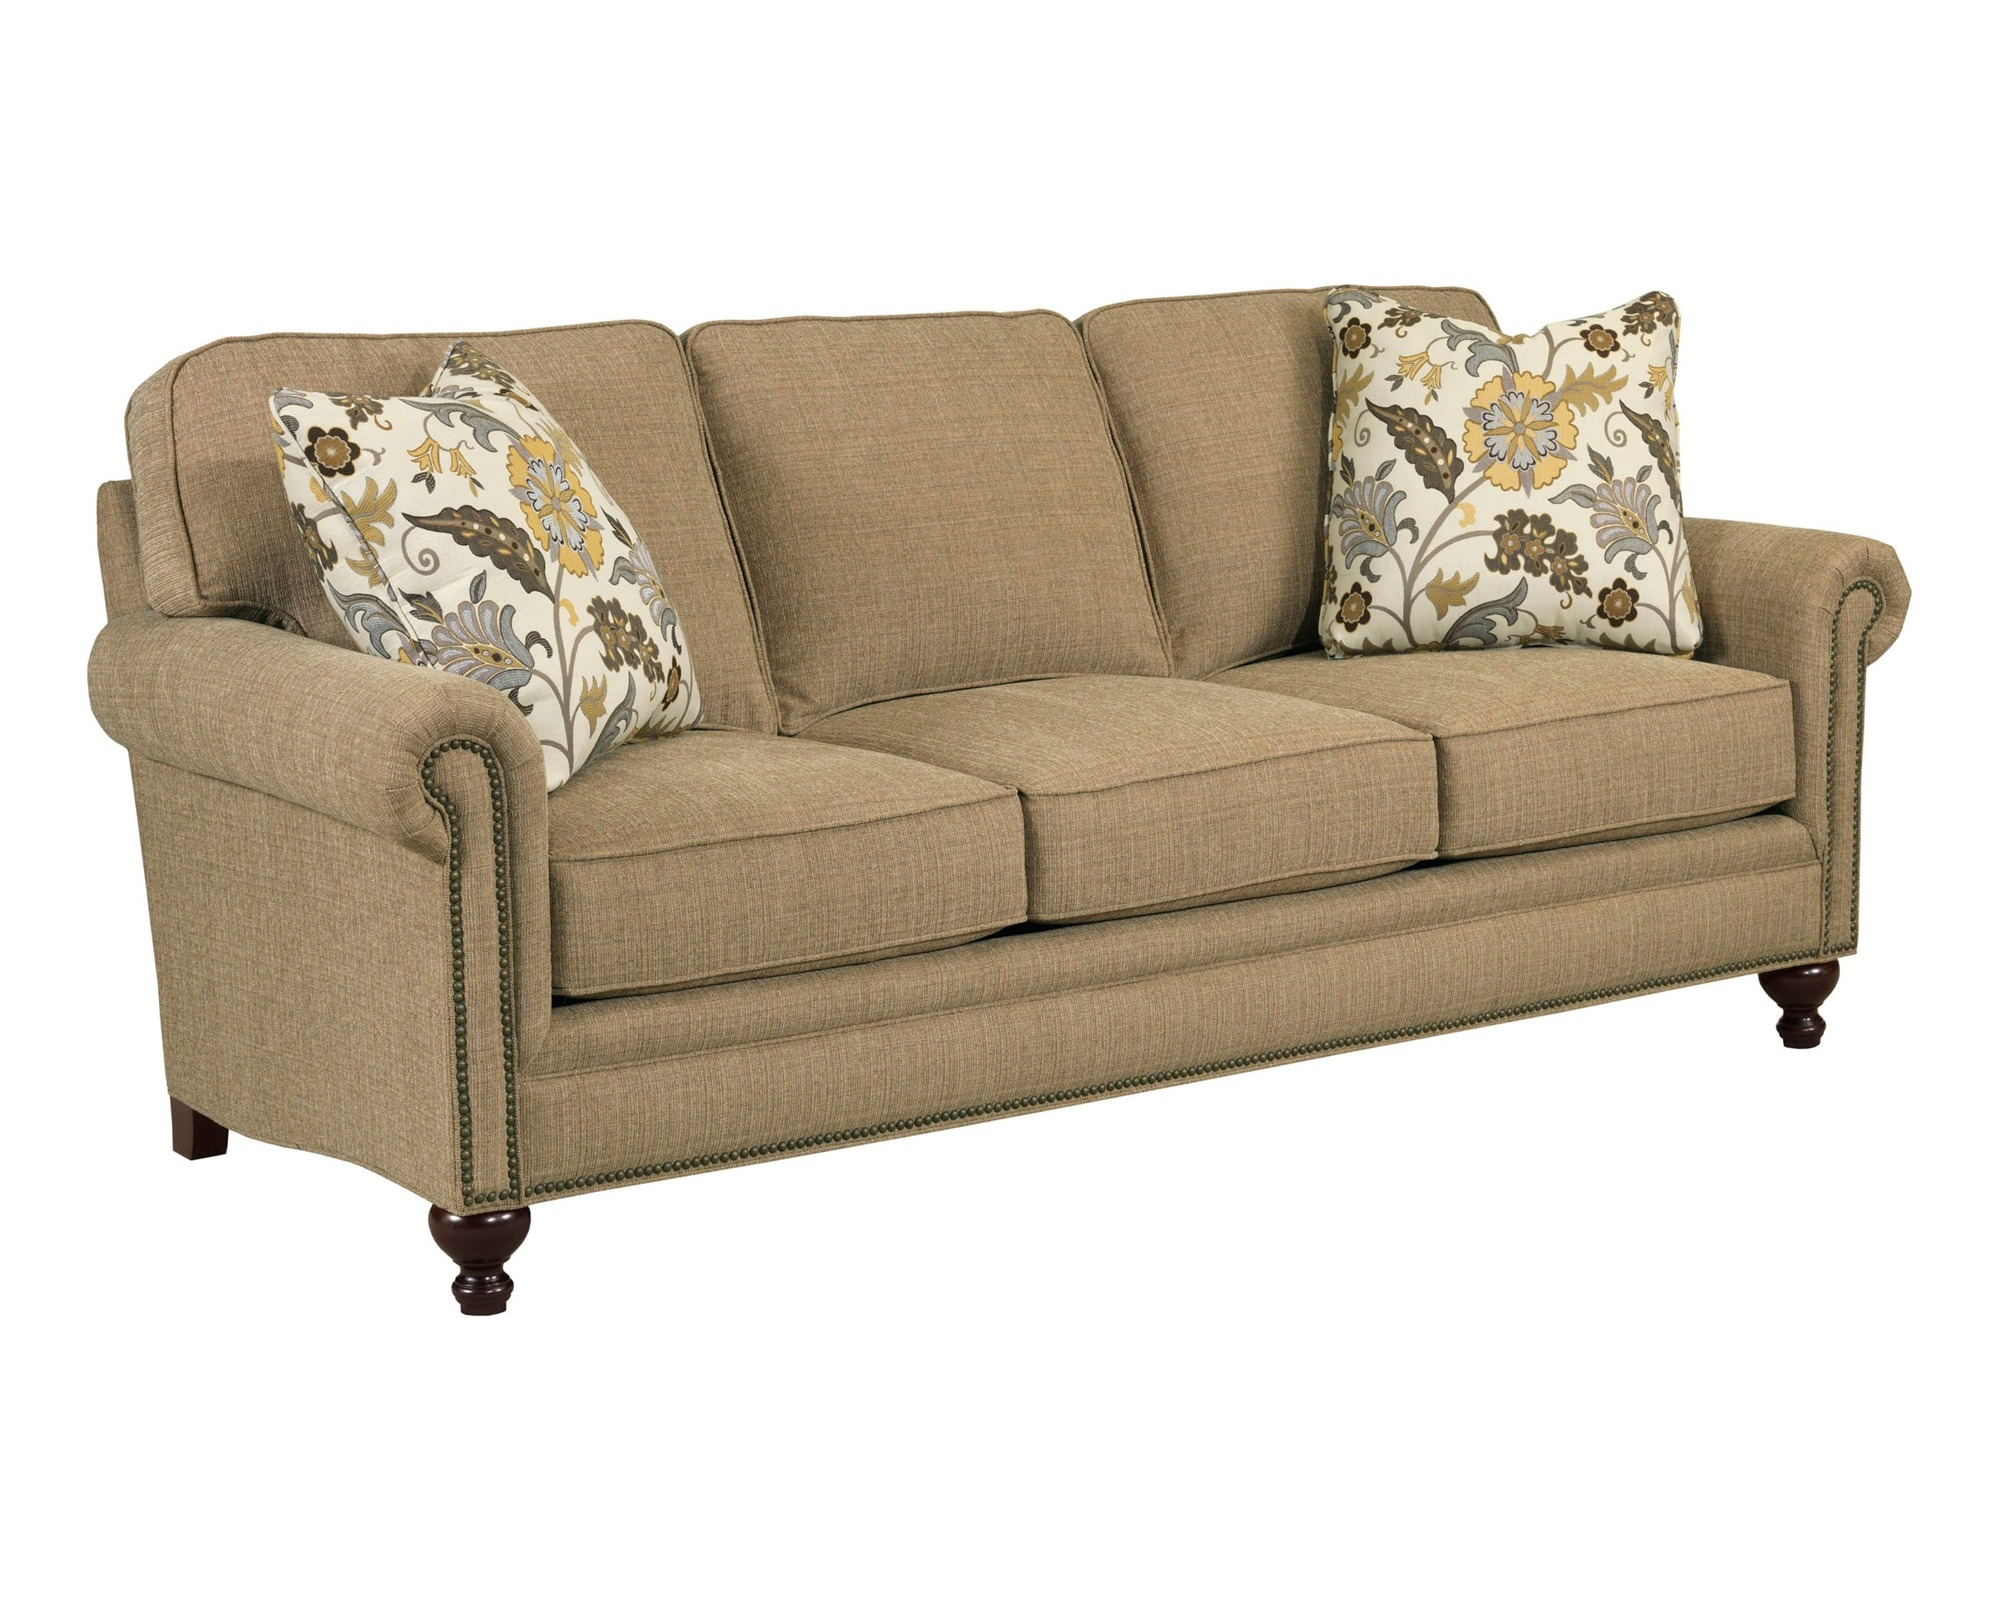 Harrison Sofabroyhill - Home Gallery Stores pertaining to Broyhill Sectional Sofas (Image 22 of 30)